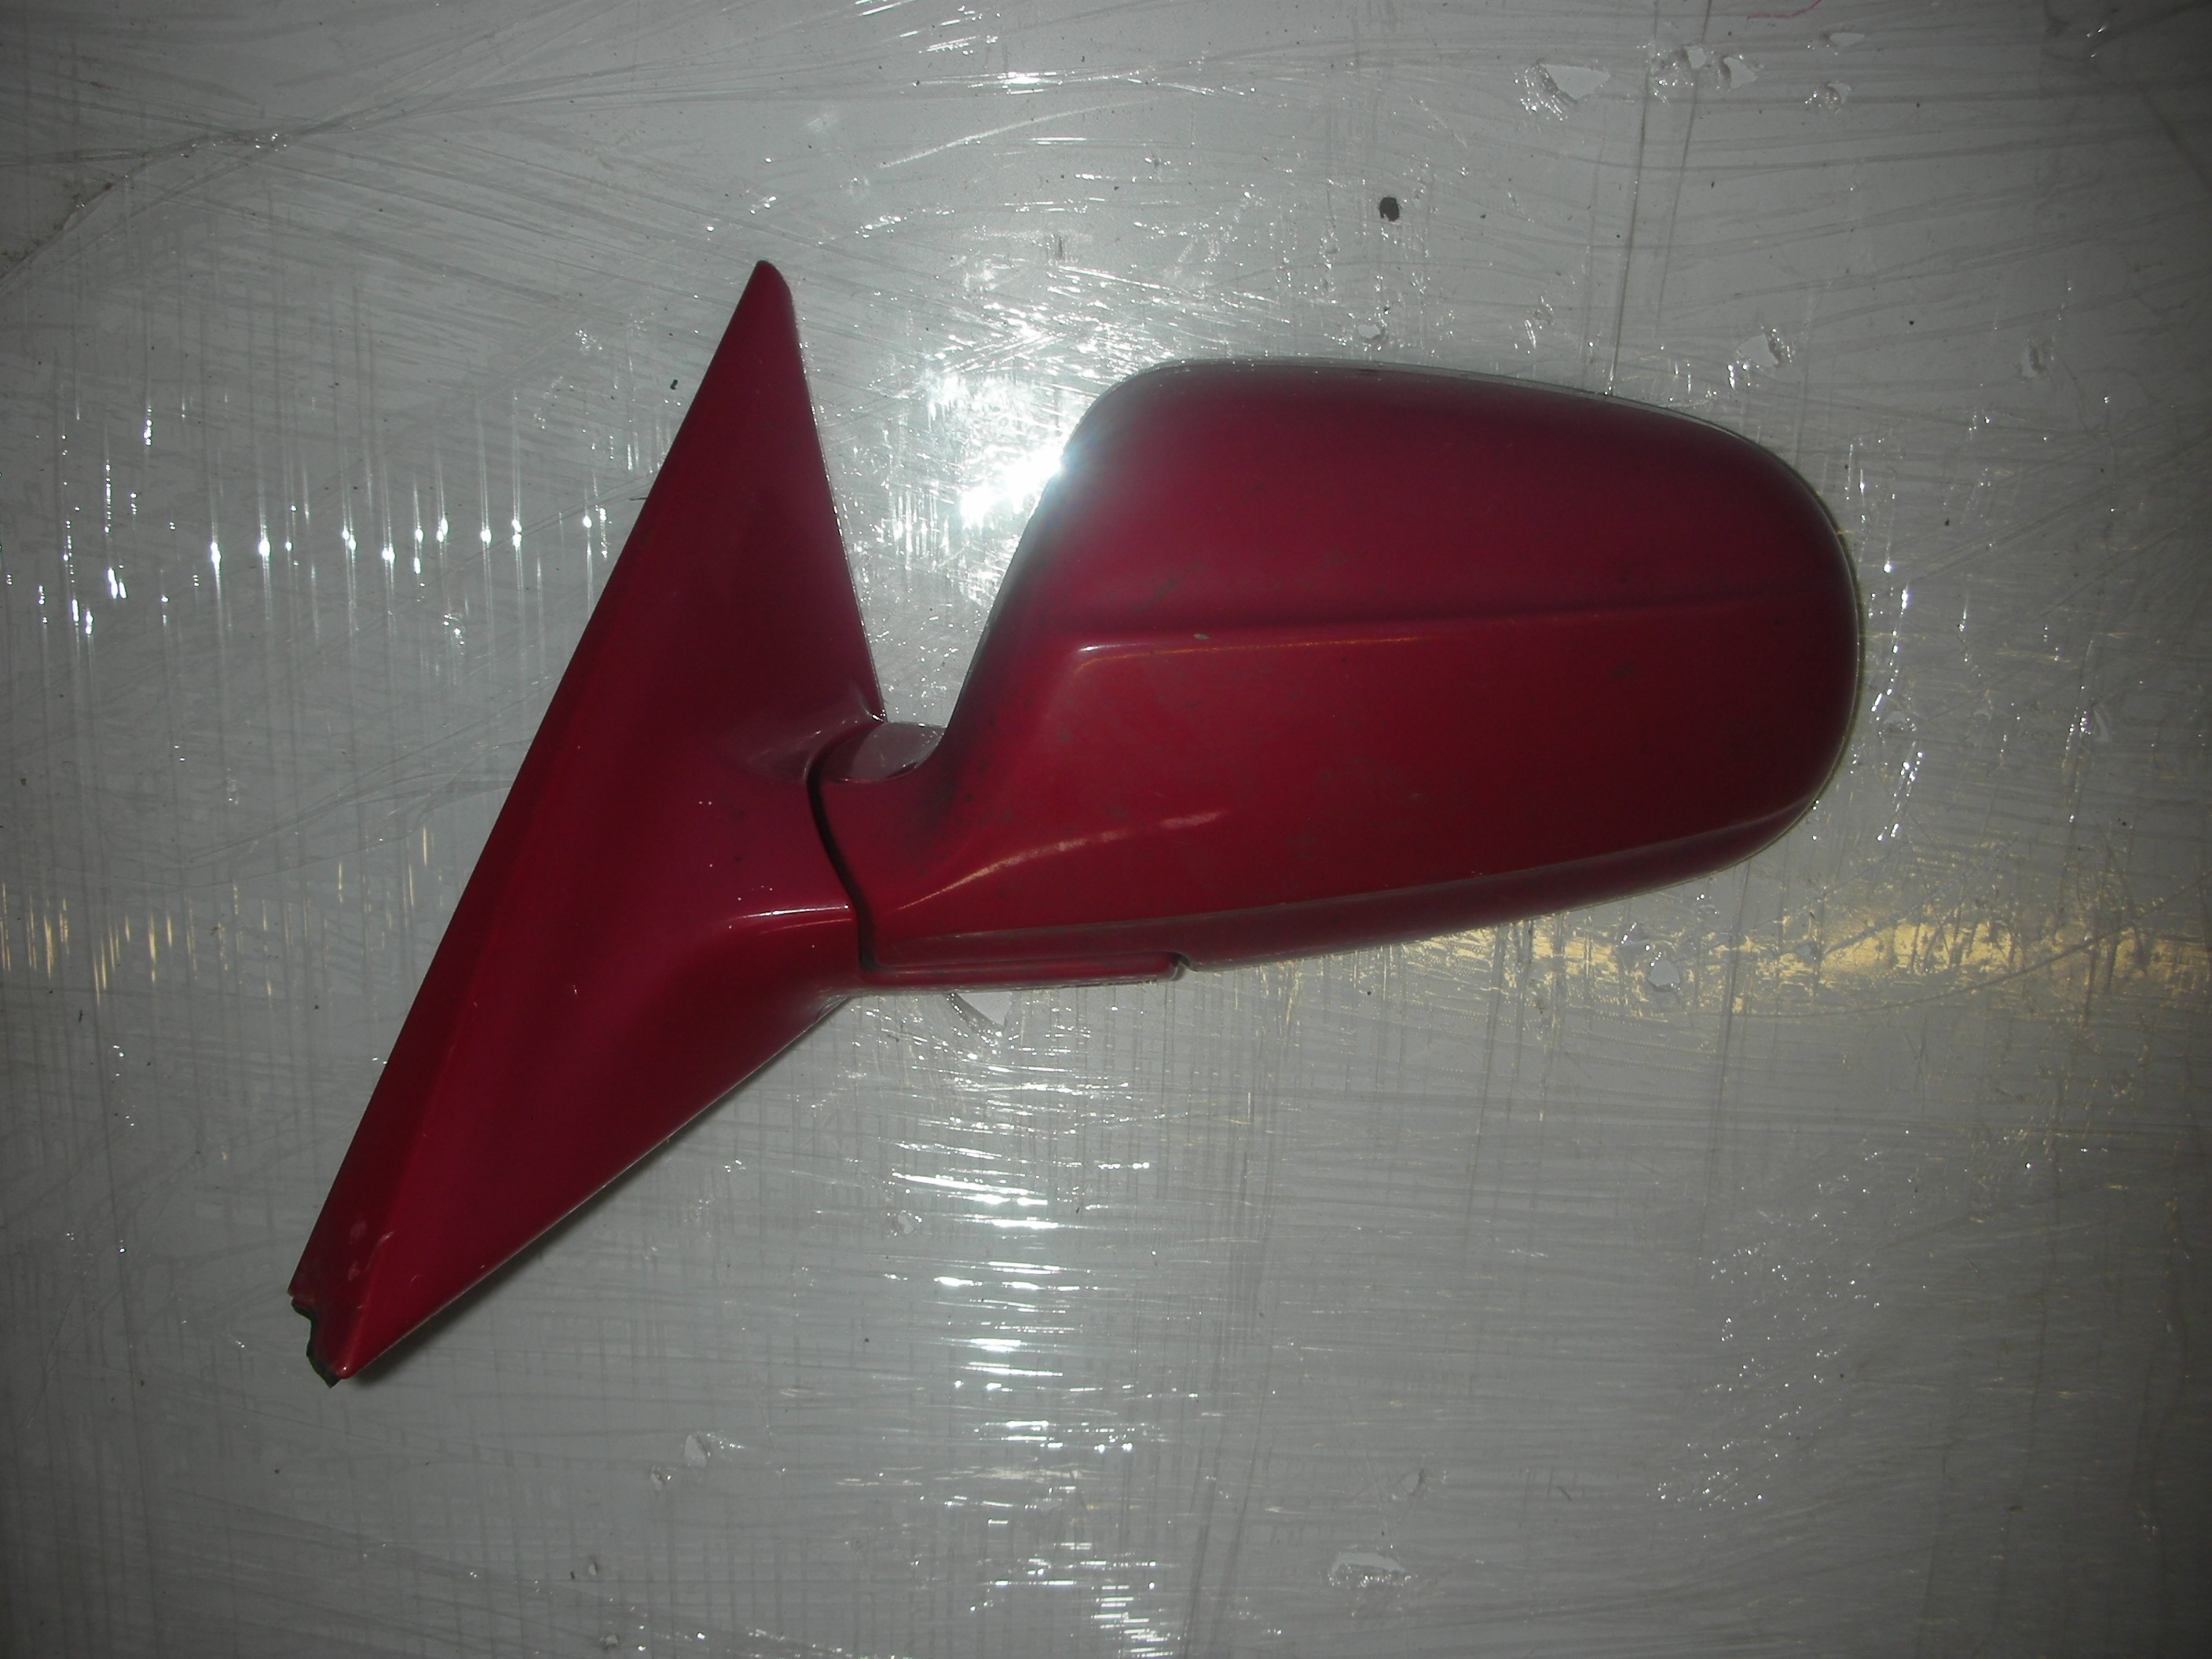 HONDA INTEGRA DC2 PASSENGER SIDE FRONT DOOR MIRROR 1998-2000.